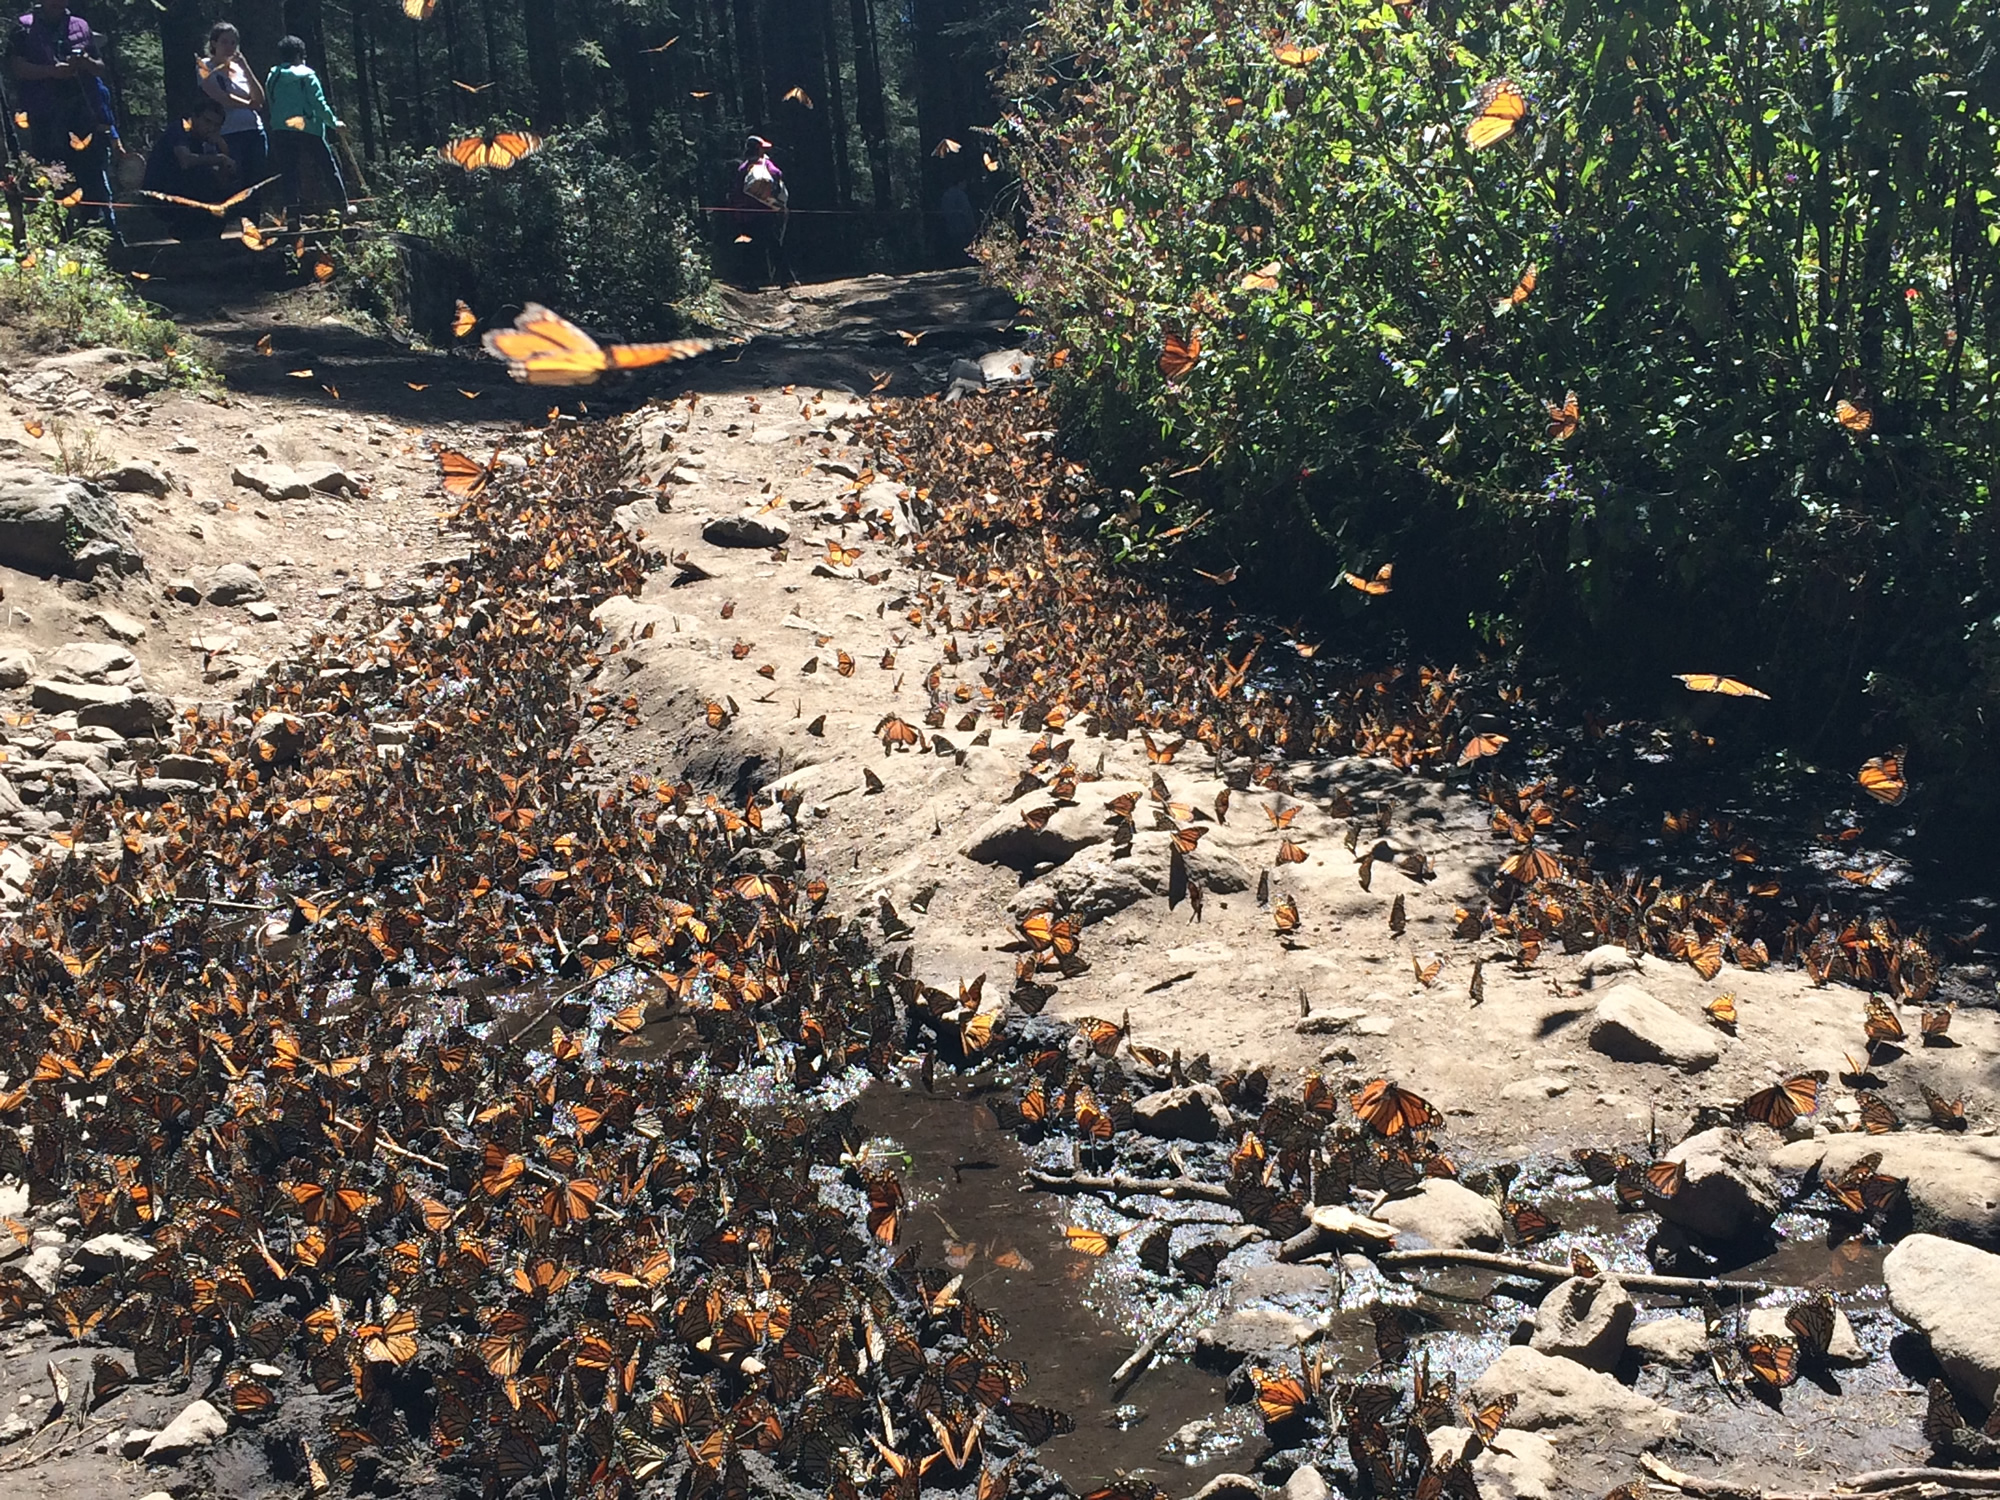 Monarch Butterflies fly from their clusters in search of water at El Rosario Sanctuary in Mexico